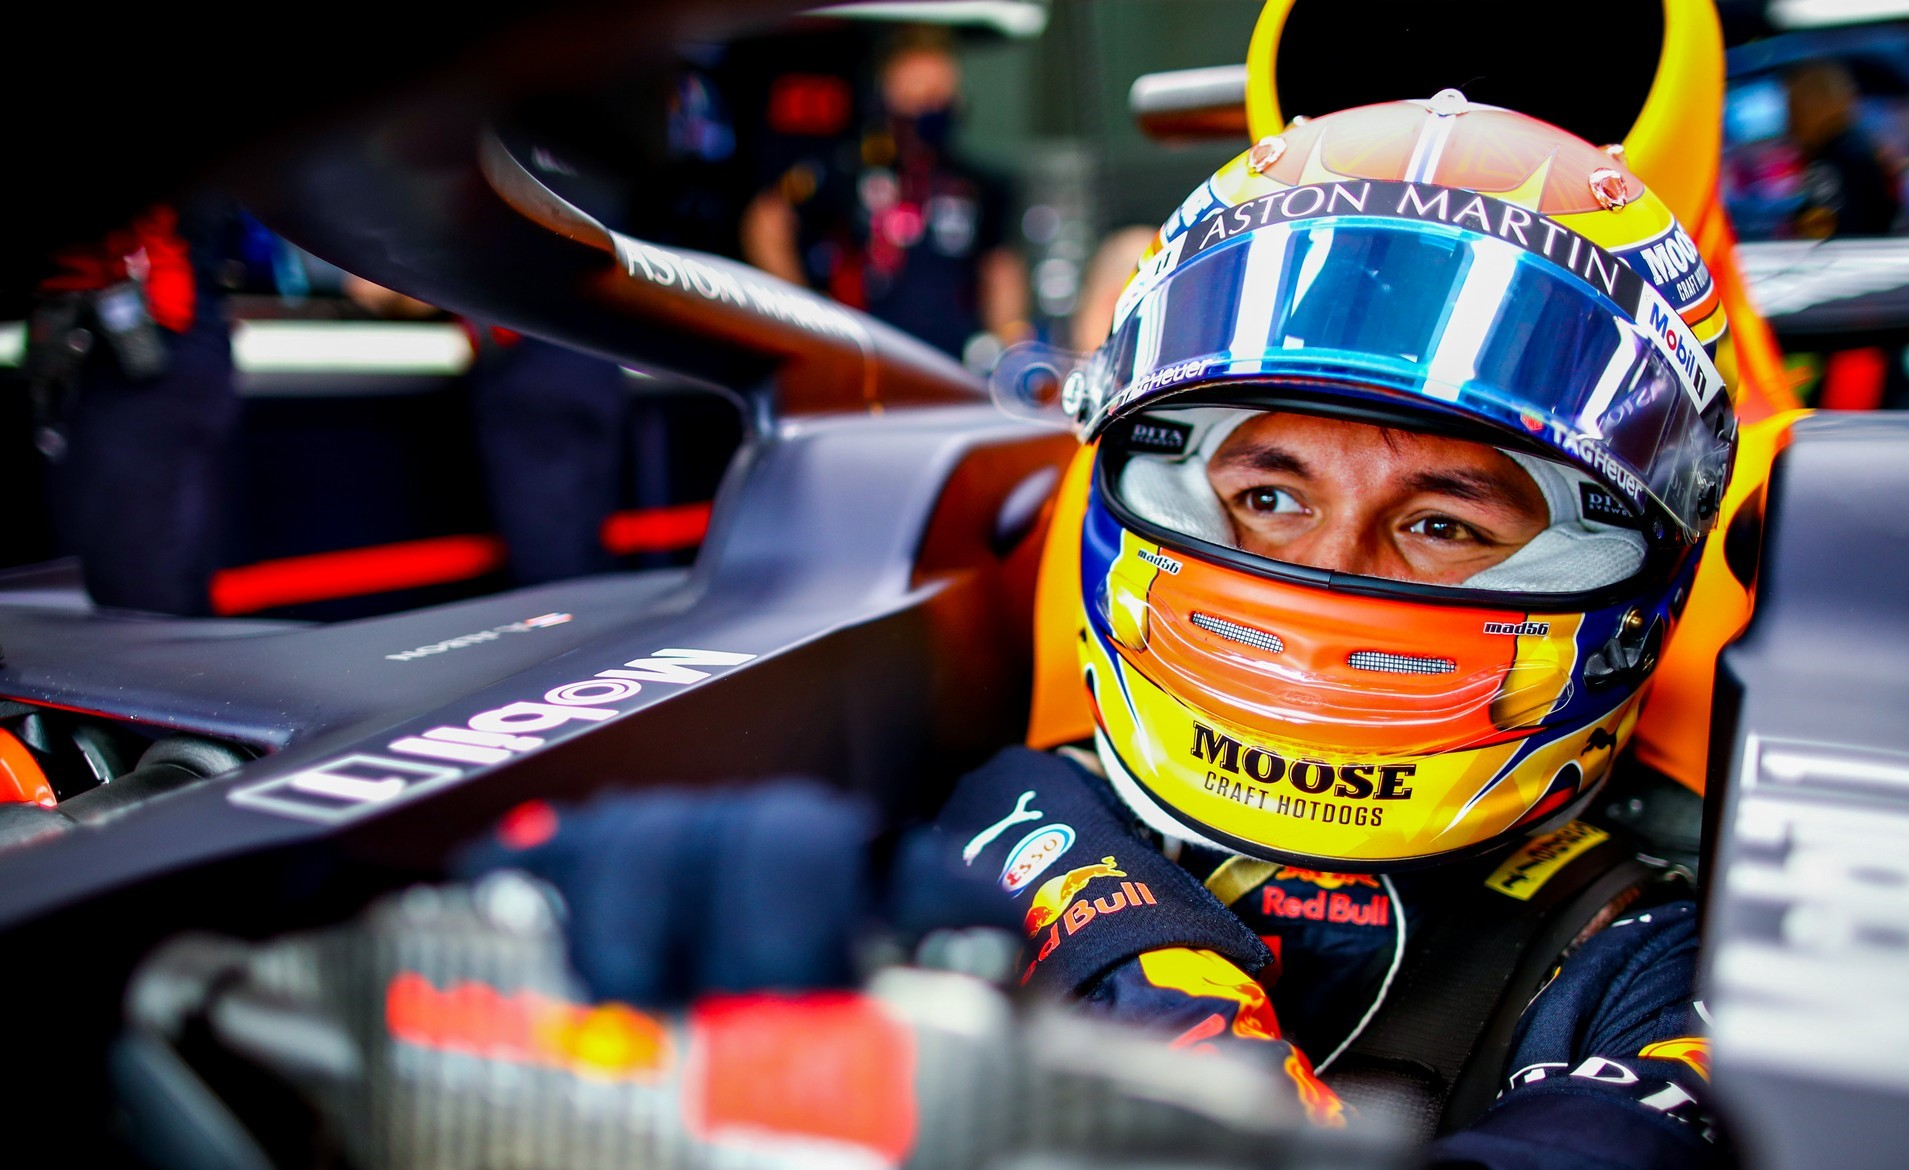 Albon to drive the Ferrari 488 GT3 in the Red Bull DTM ...